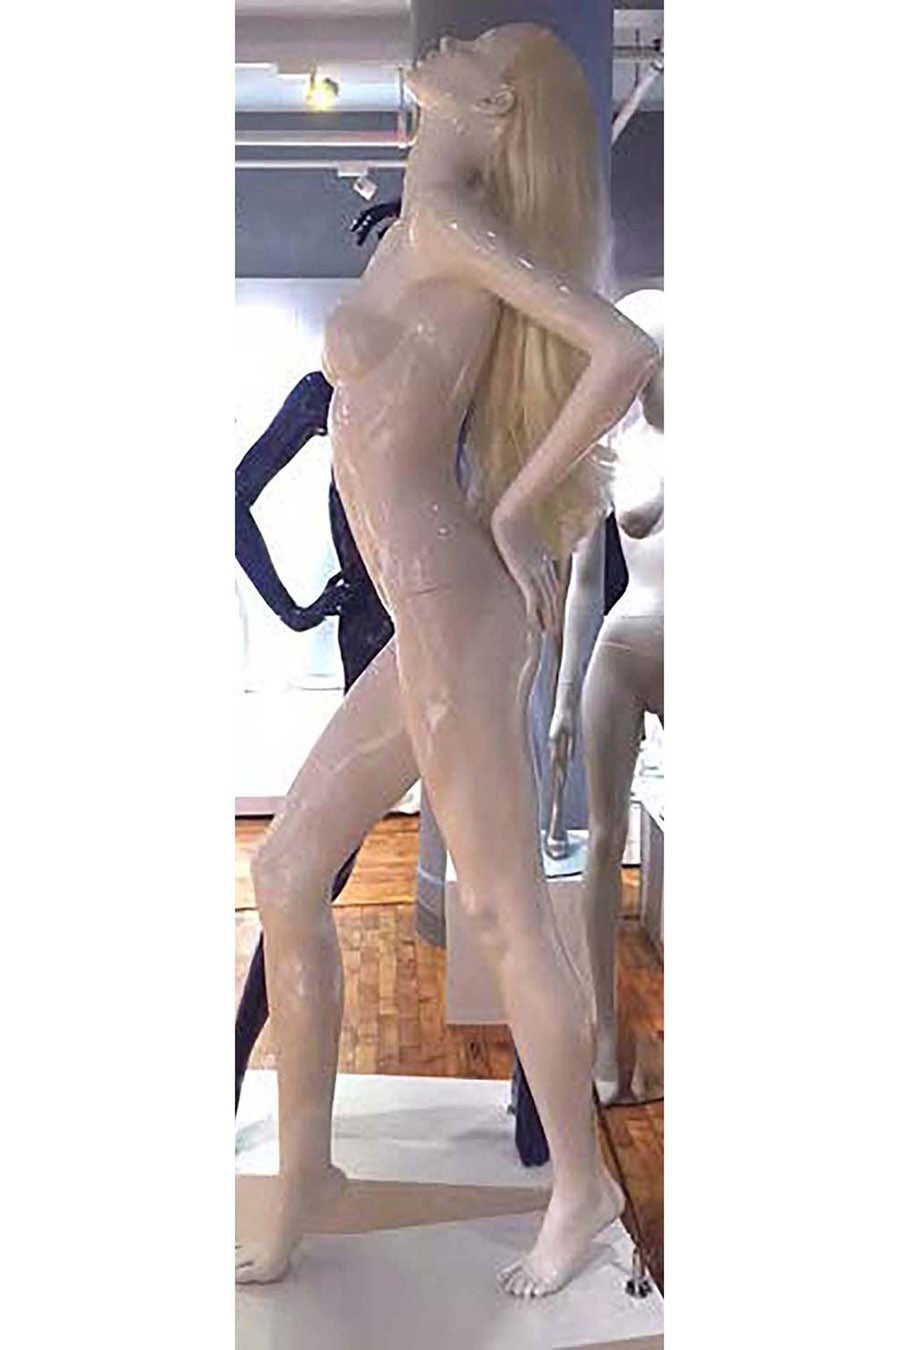 signal white female mannequin with head tilted back, hands on hips with back arched, and right leg stepping forward